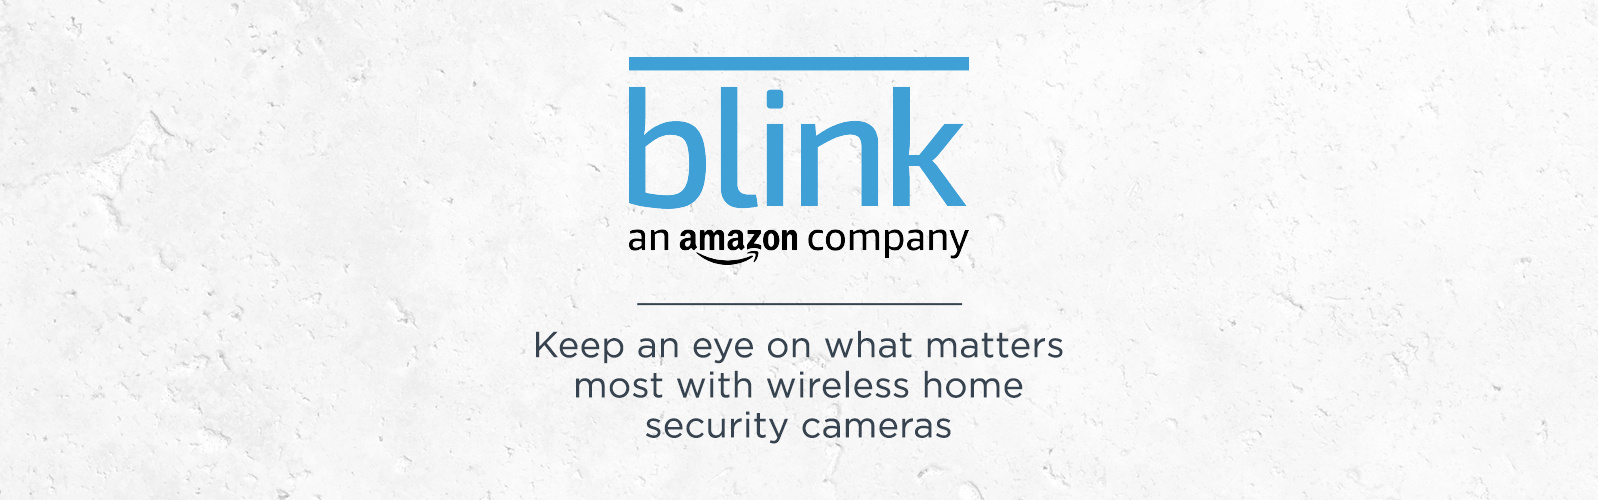 Blink, an Amazon company. Keep an eye on what matters most with wireless home security cameras